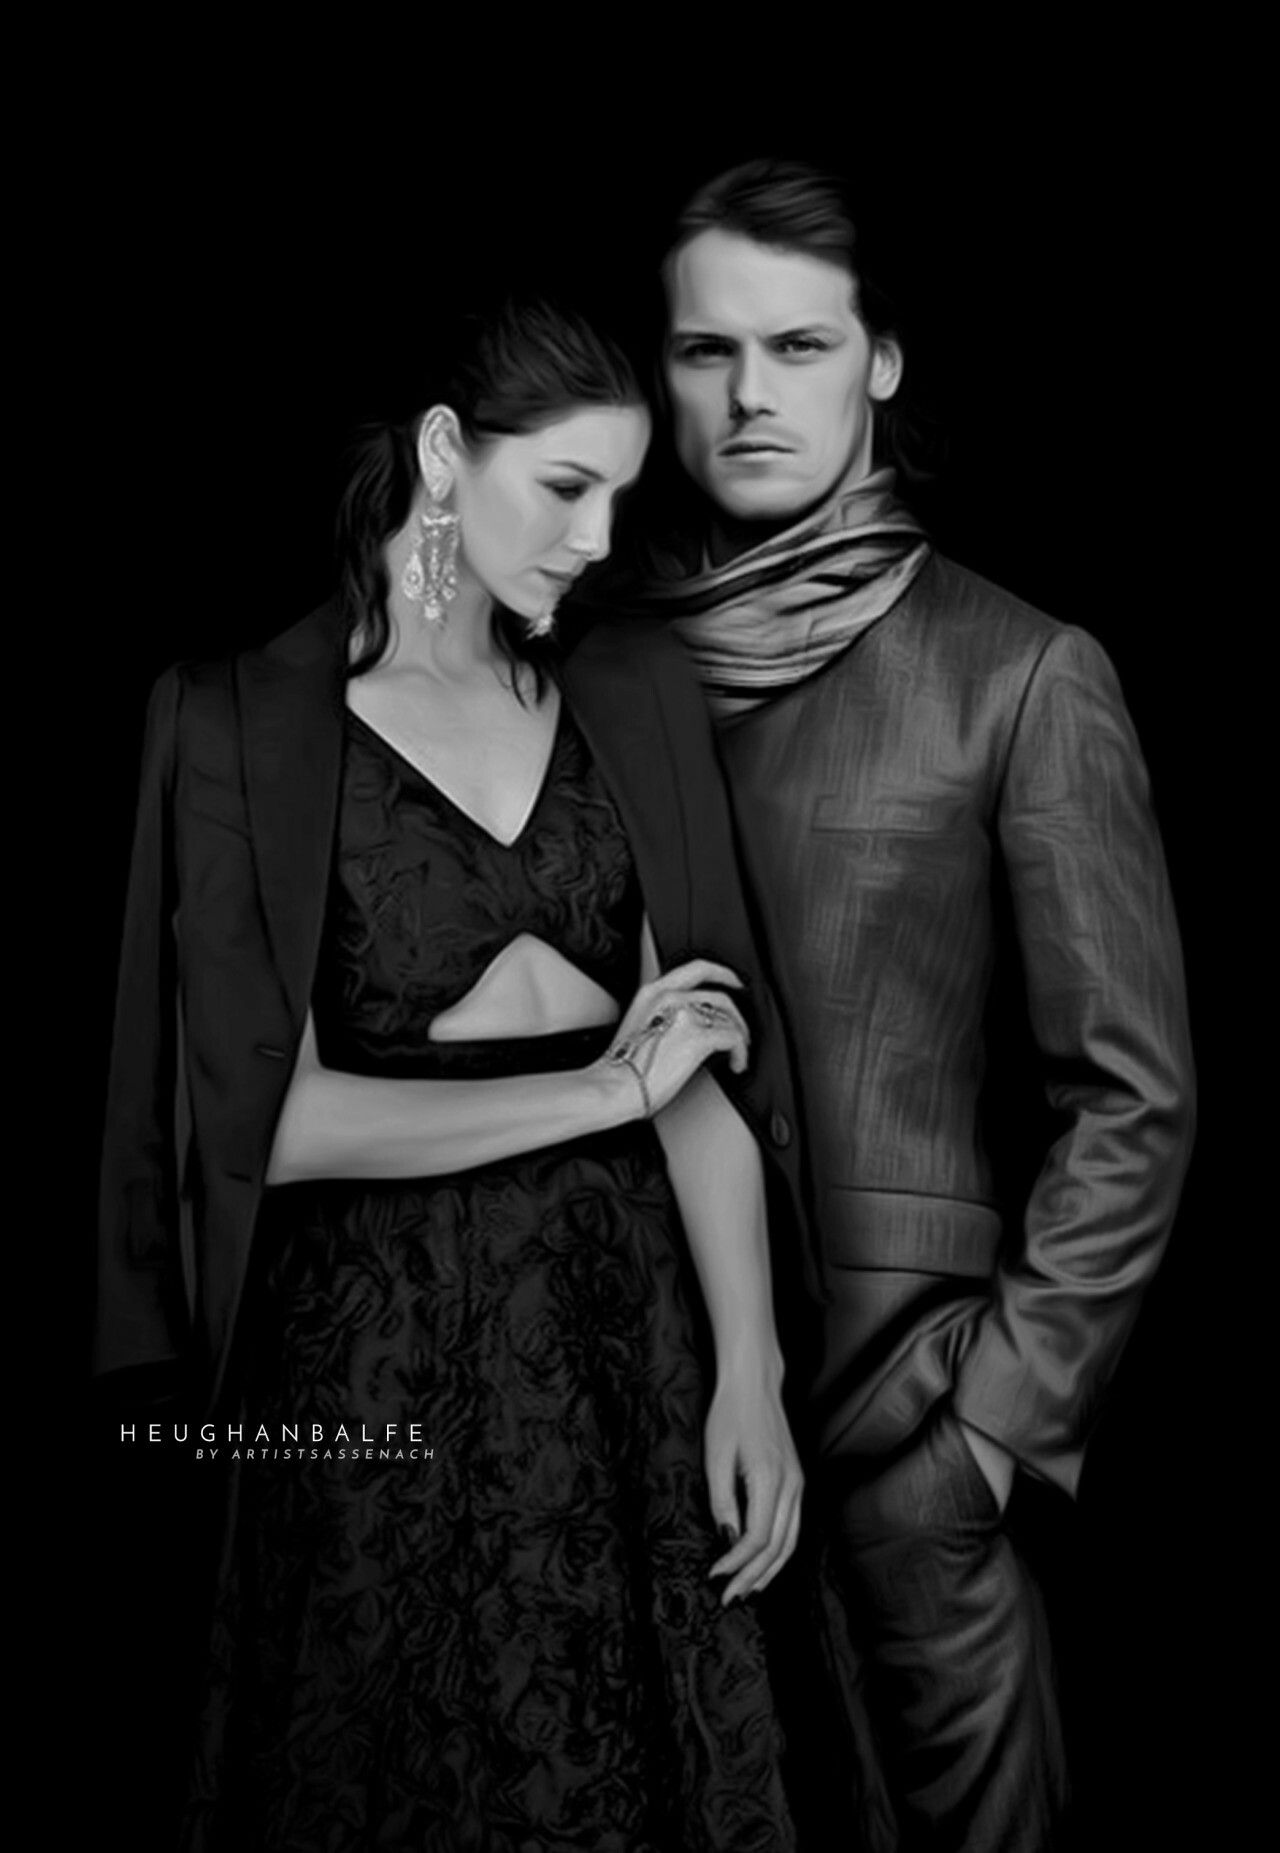 OMG! This is a wonderful manip! So gorgeous together! source